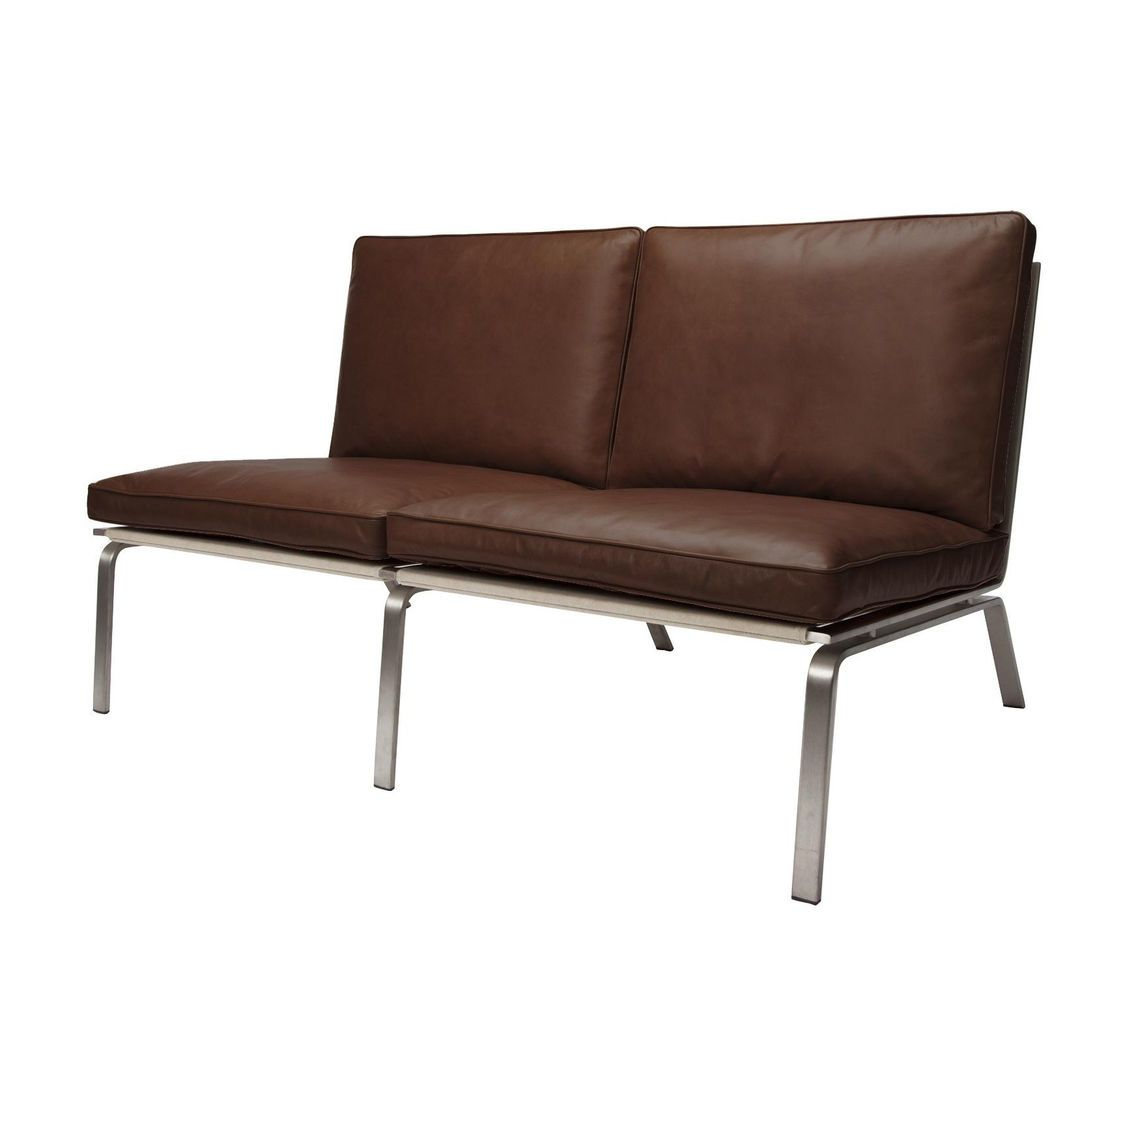 cheap brown leather 2 seater sofa bed mattress air dream man lounge norr 11 ambientedirect